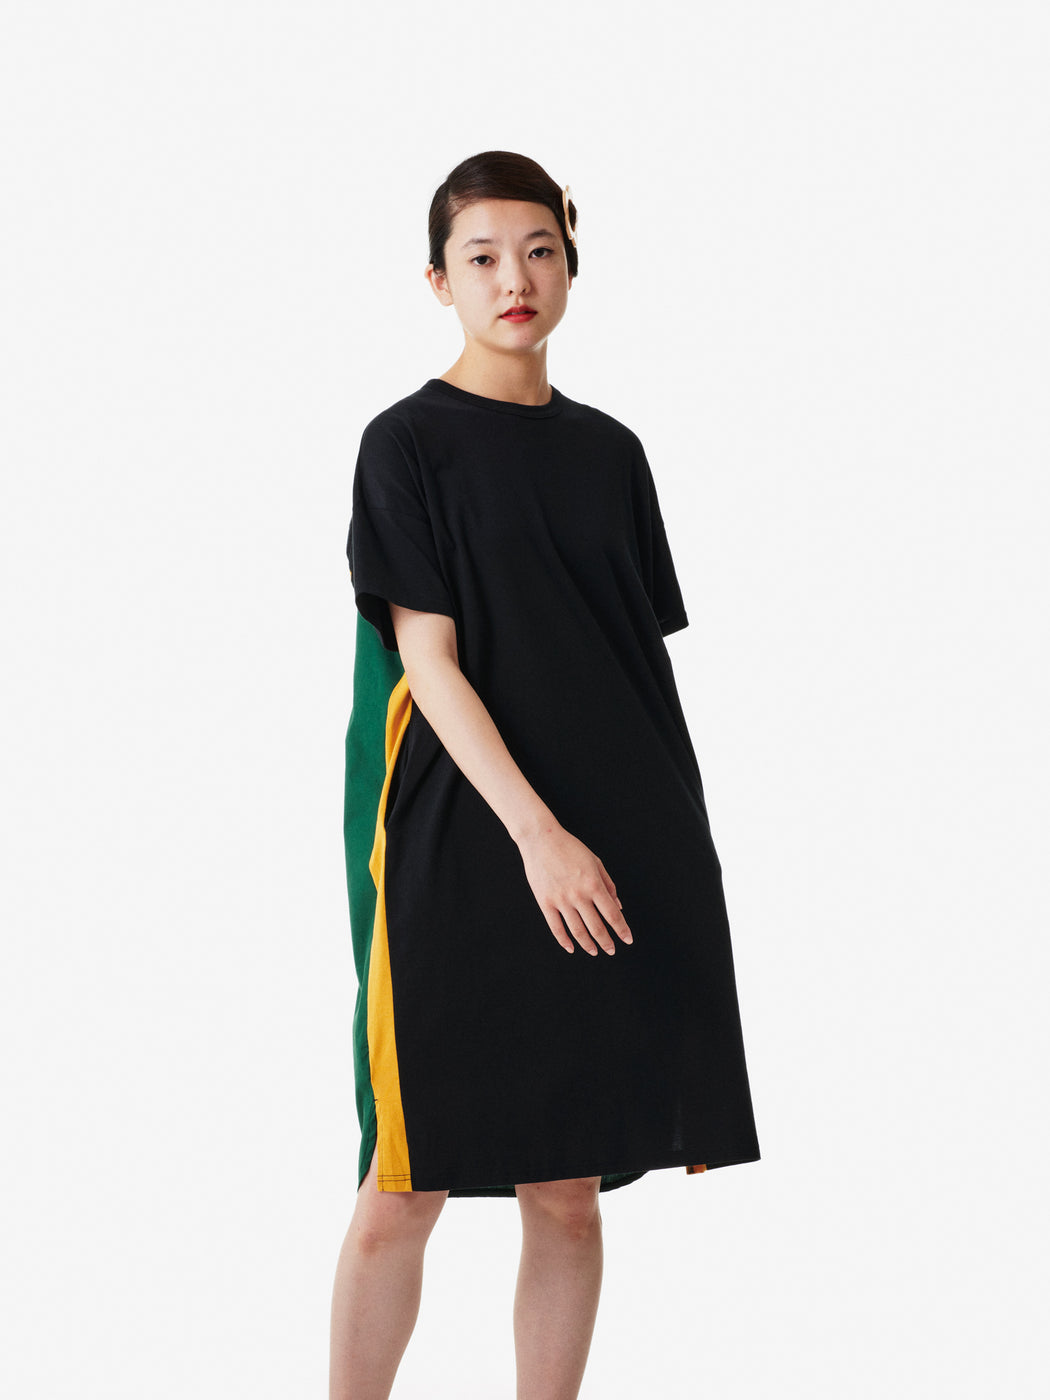 Shirt Fabrics Women's Short Sleeve Wide T-shirt Dress